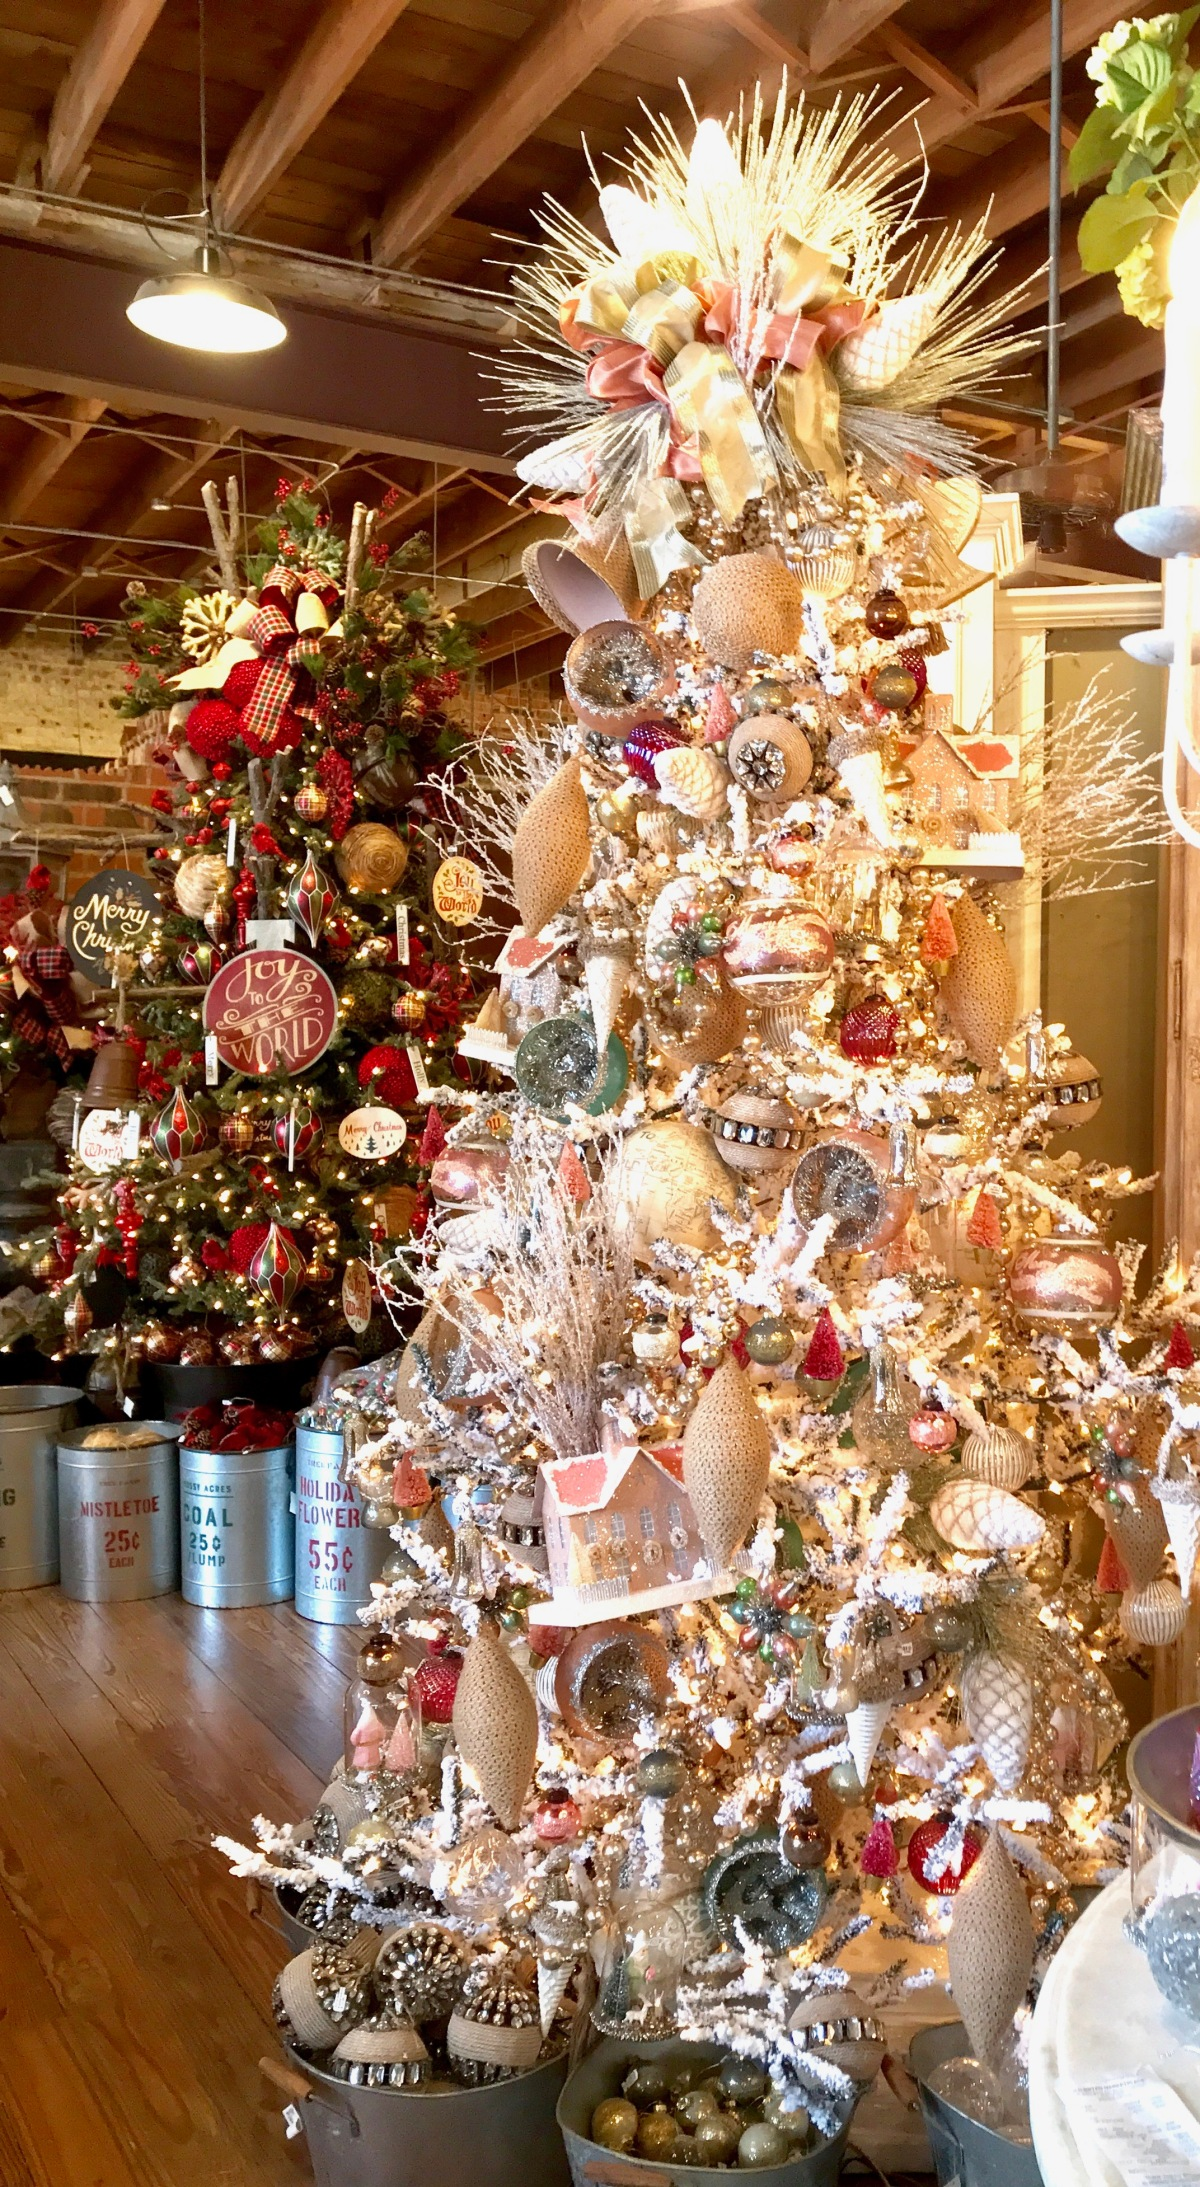 Where do you like to shop for theholidays?